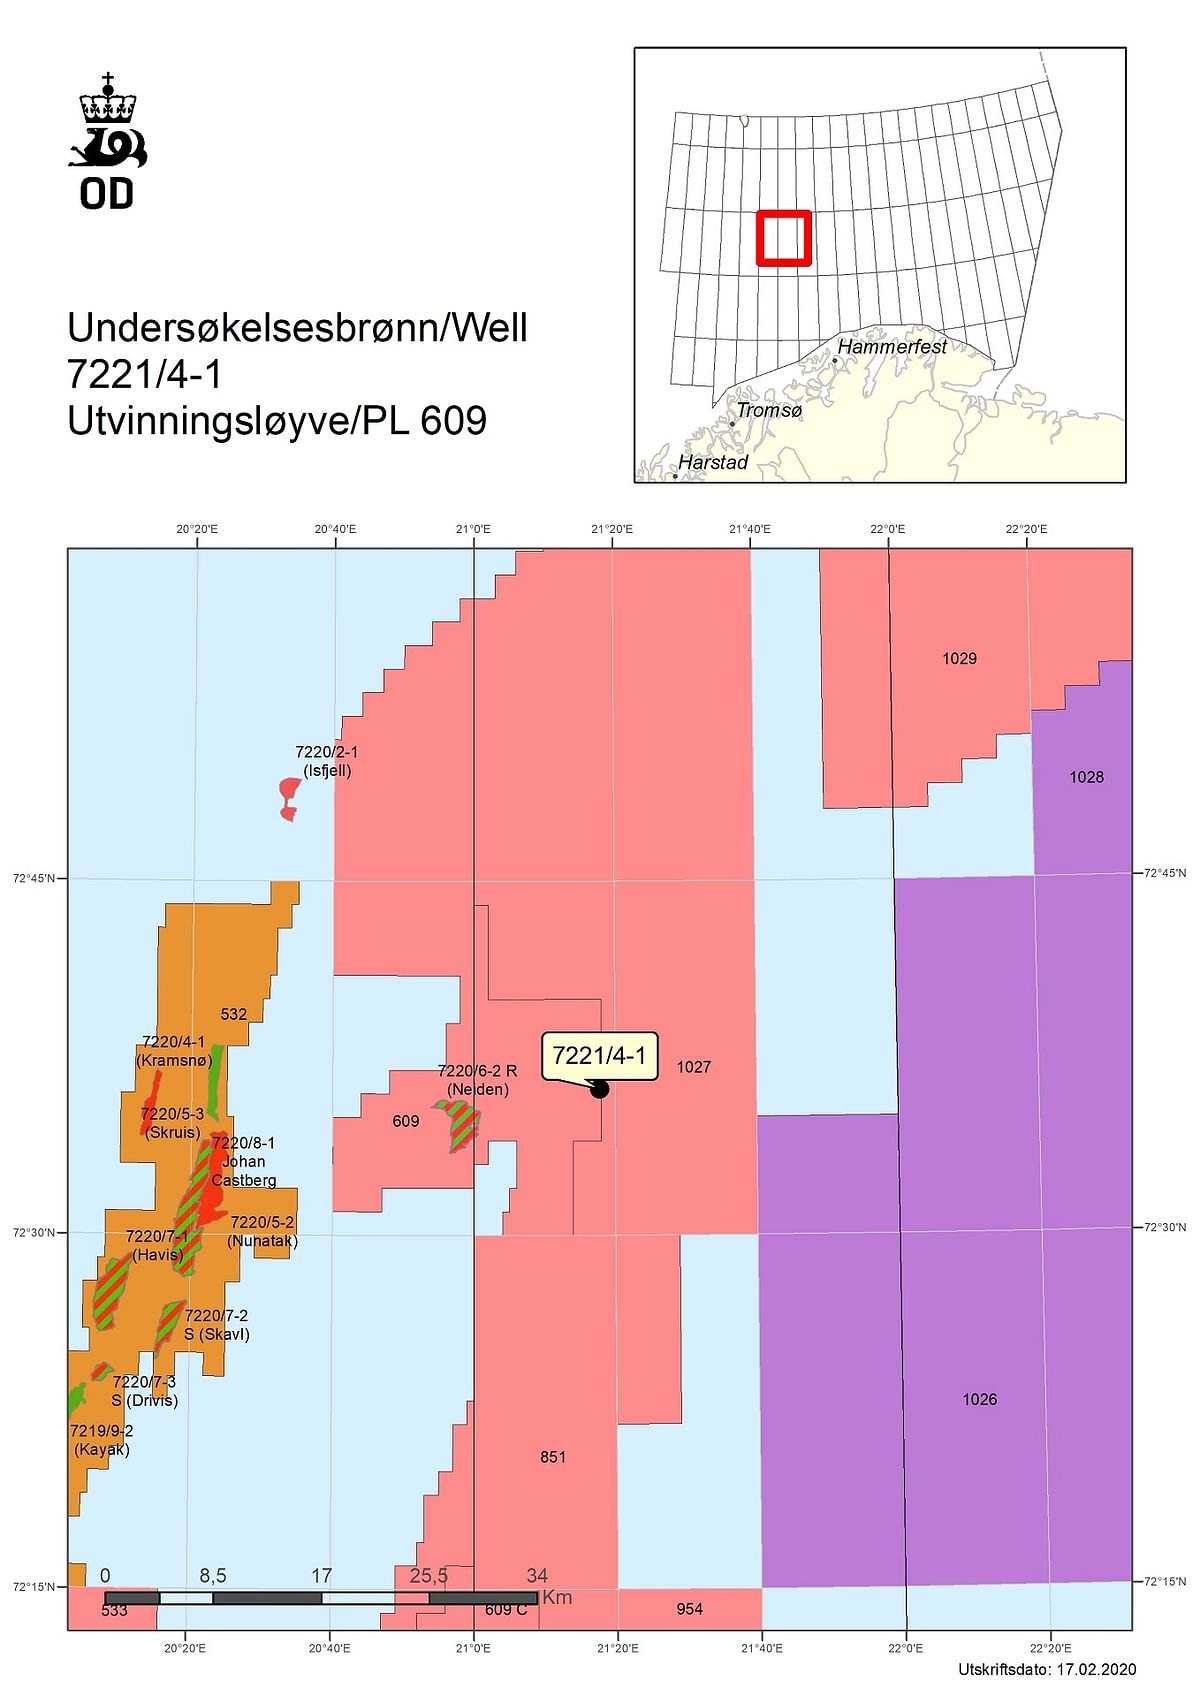 Lundin Energy Dry Well East of Johan Castberg in the Barents Sea